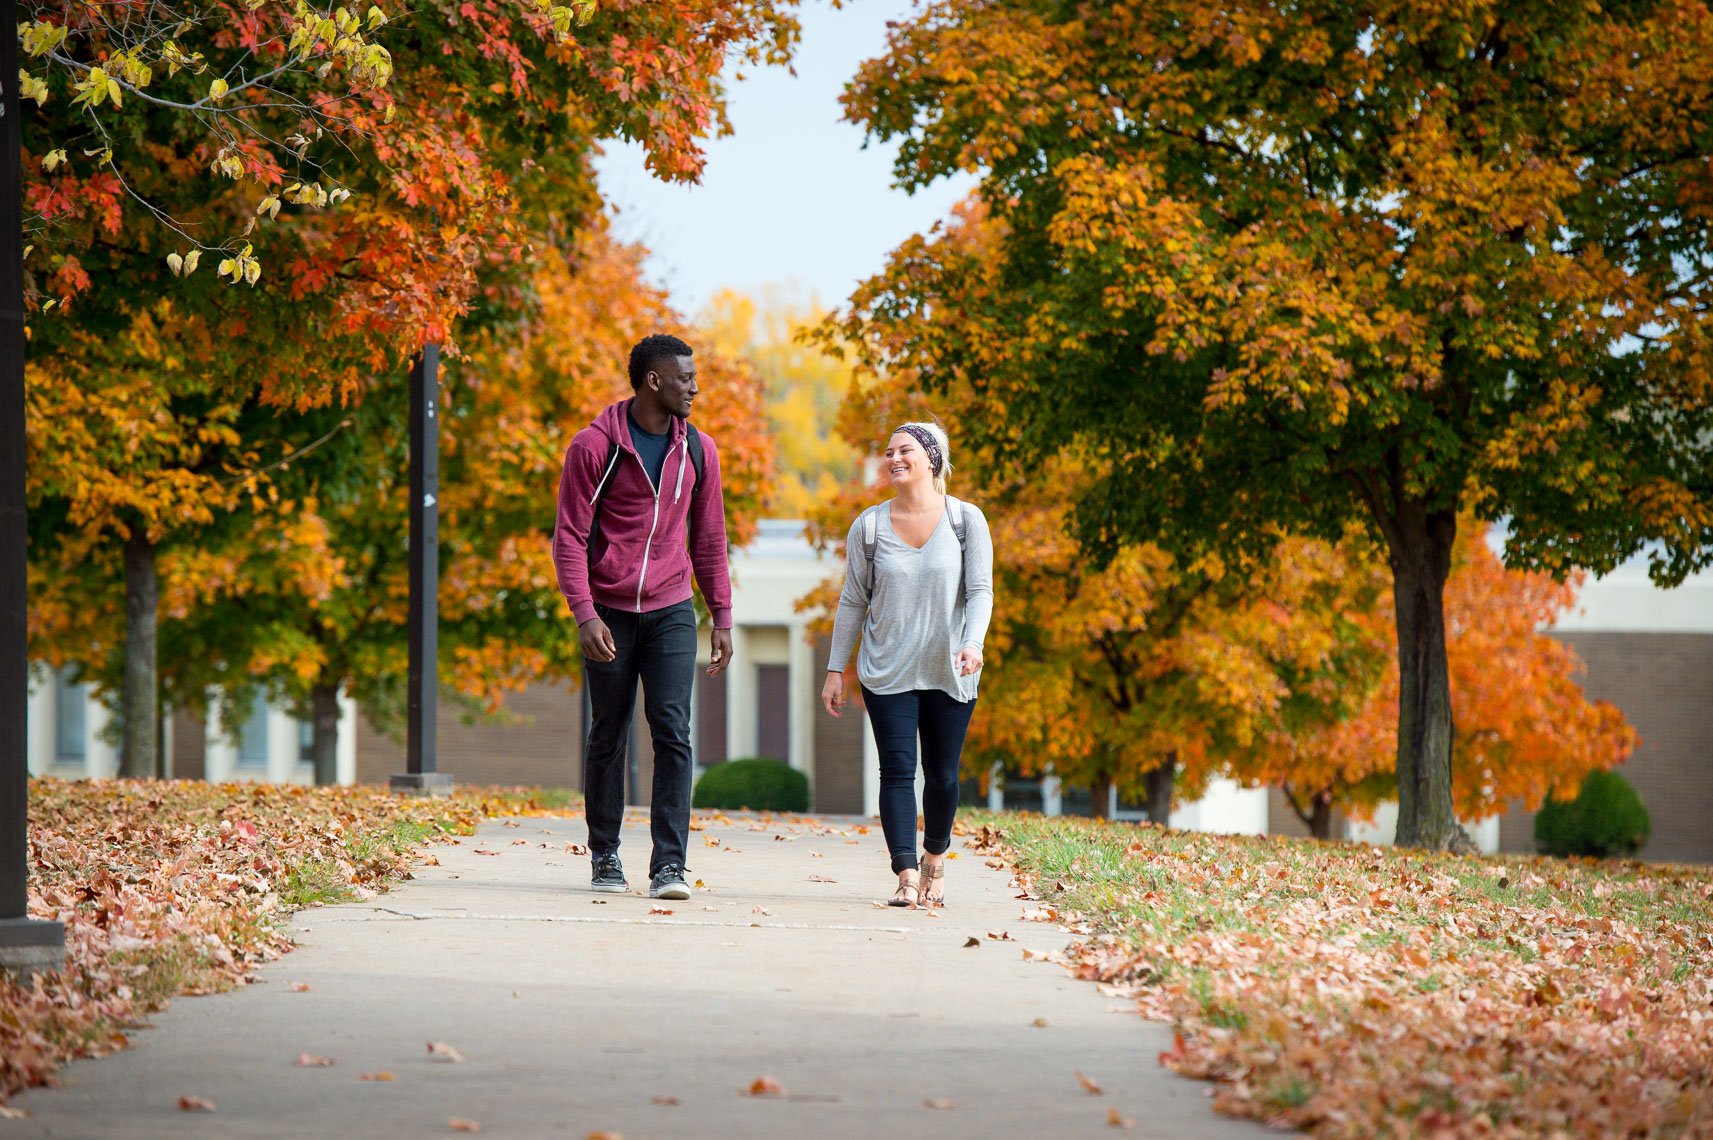 Authentic-Admissions-Marketing-Photographs-Video-Autumn-Fall-Midwest